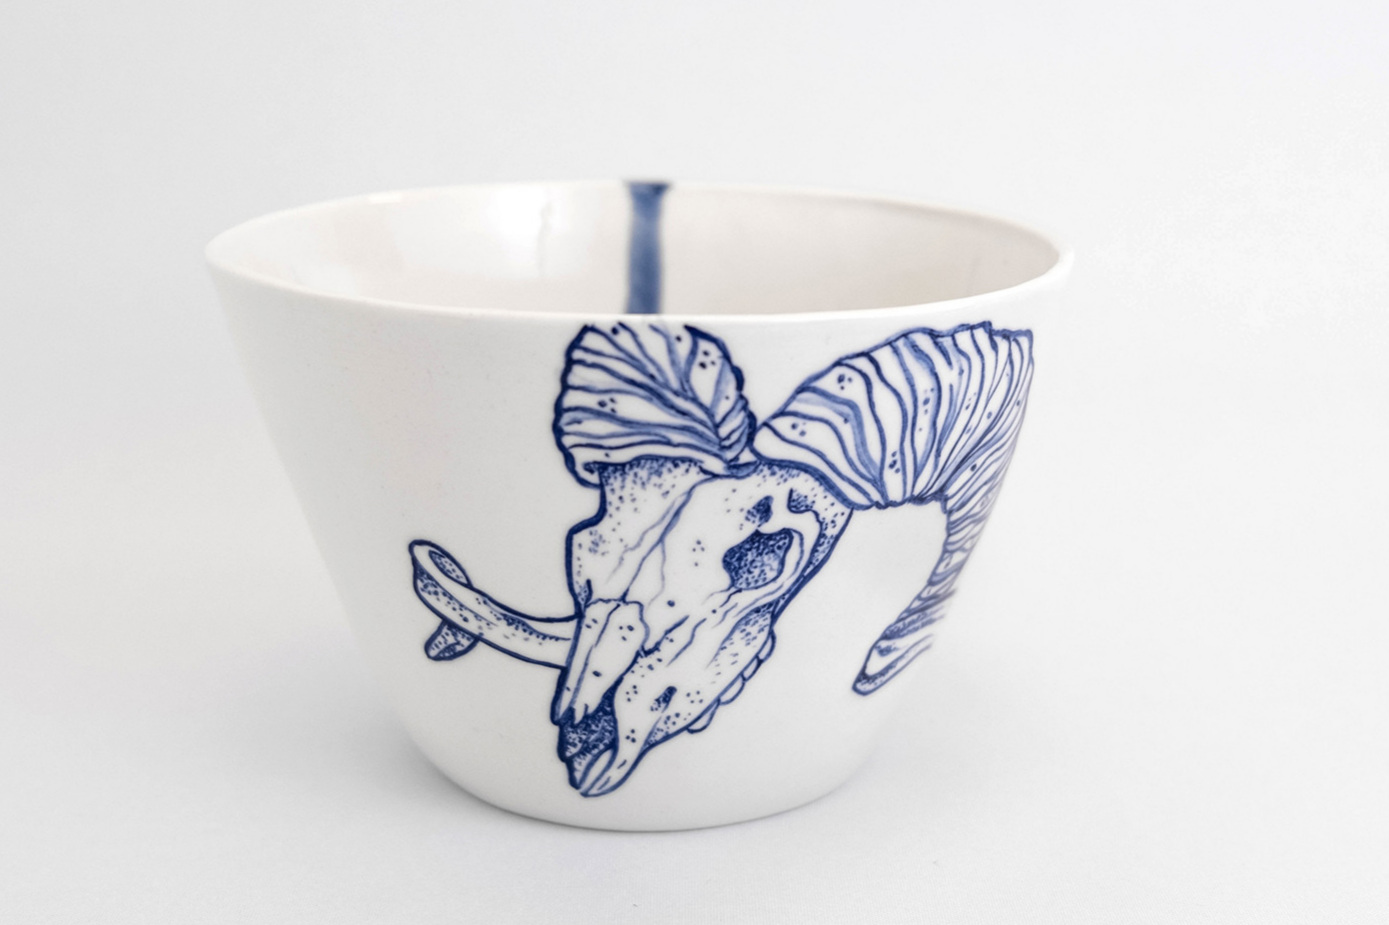 Skull tattoo animal goat hand painted porcelain blue white ceramic salad bowl handmade Berlin tattooed porcelain Antikapratika .jpg